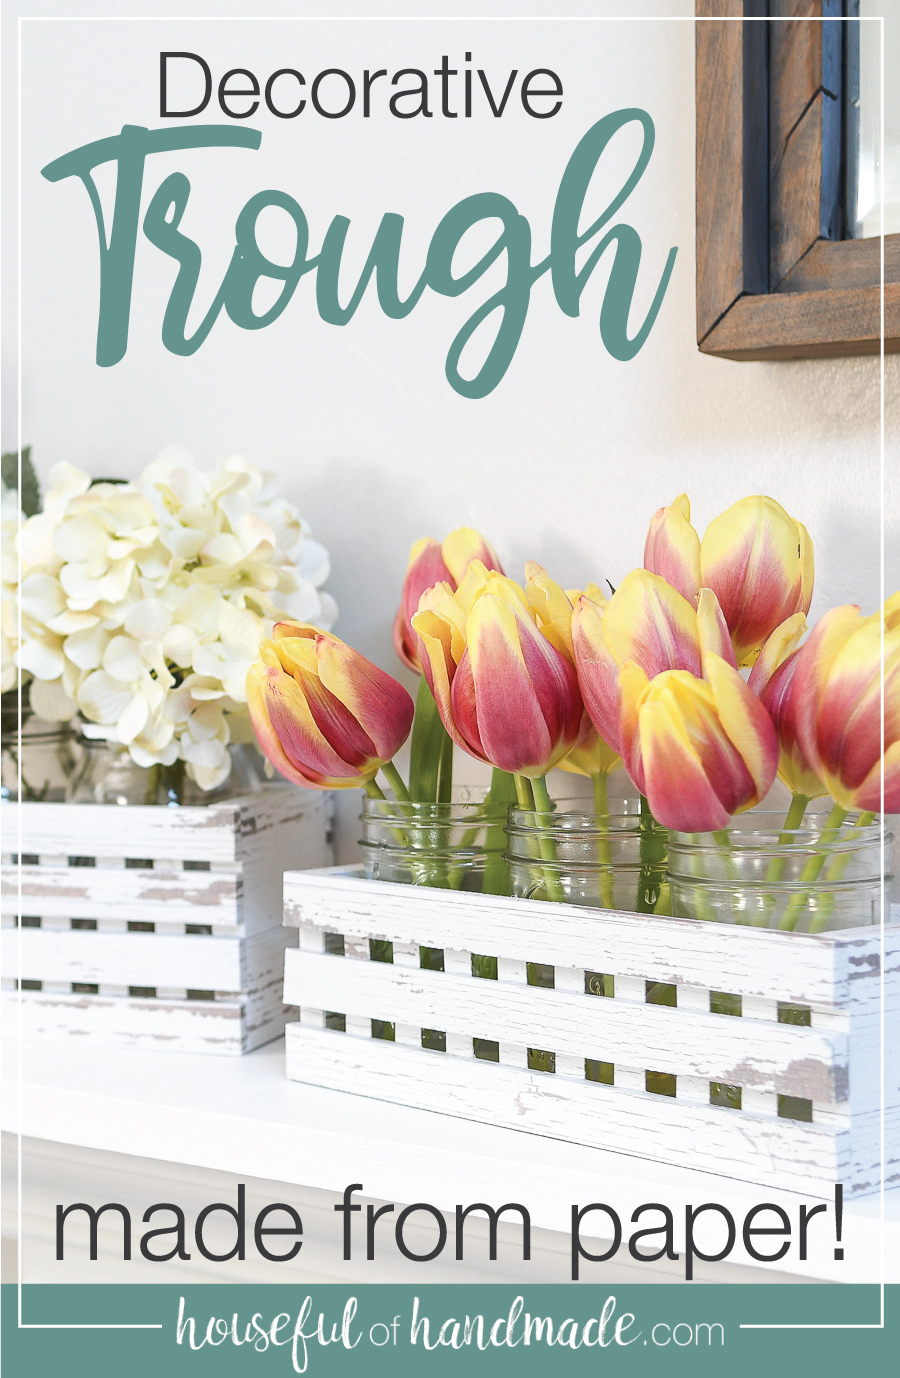 Farmhouse trough decor with flowers inside and text overlay.